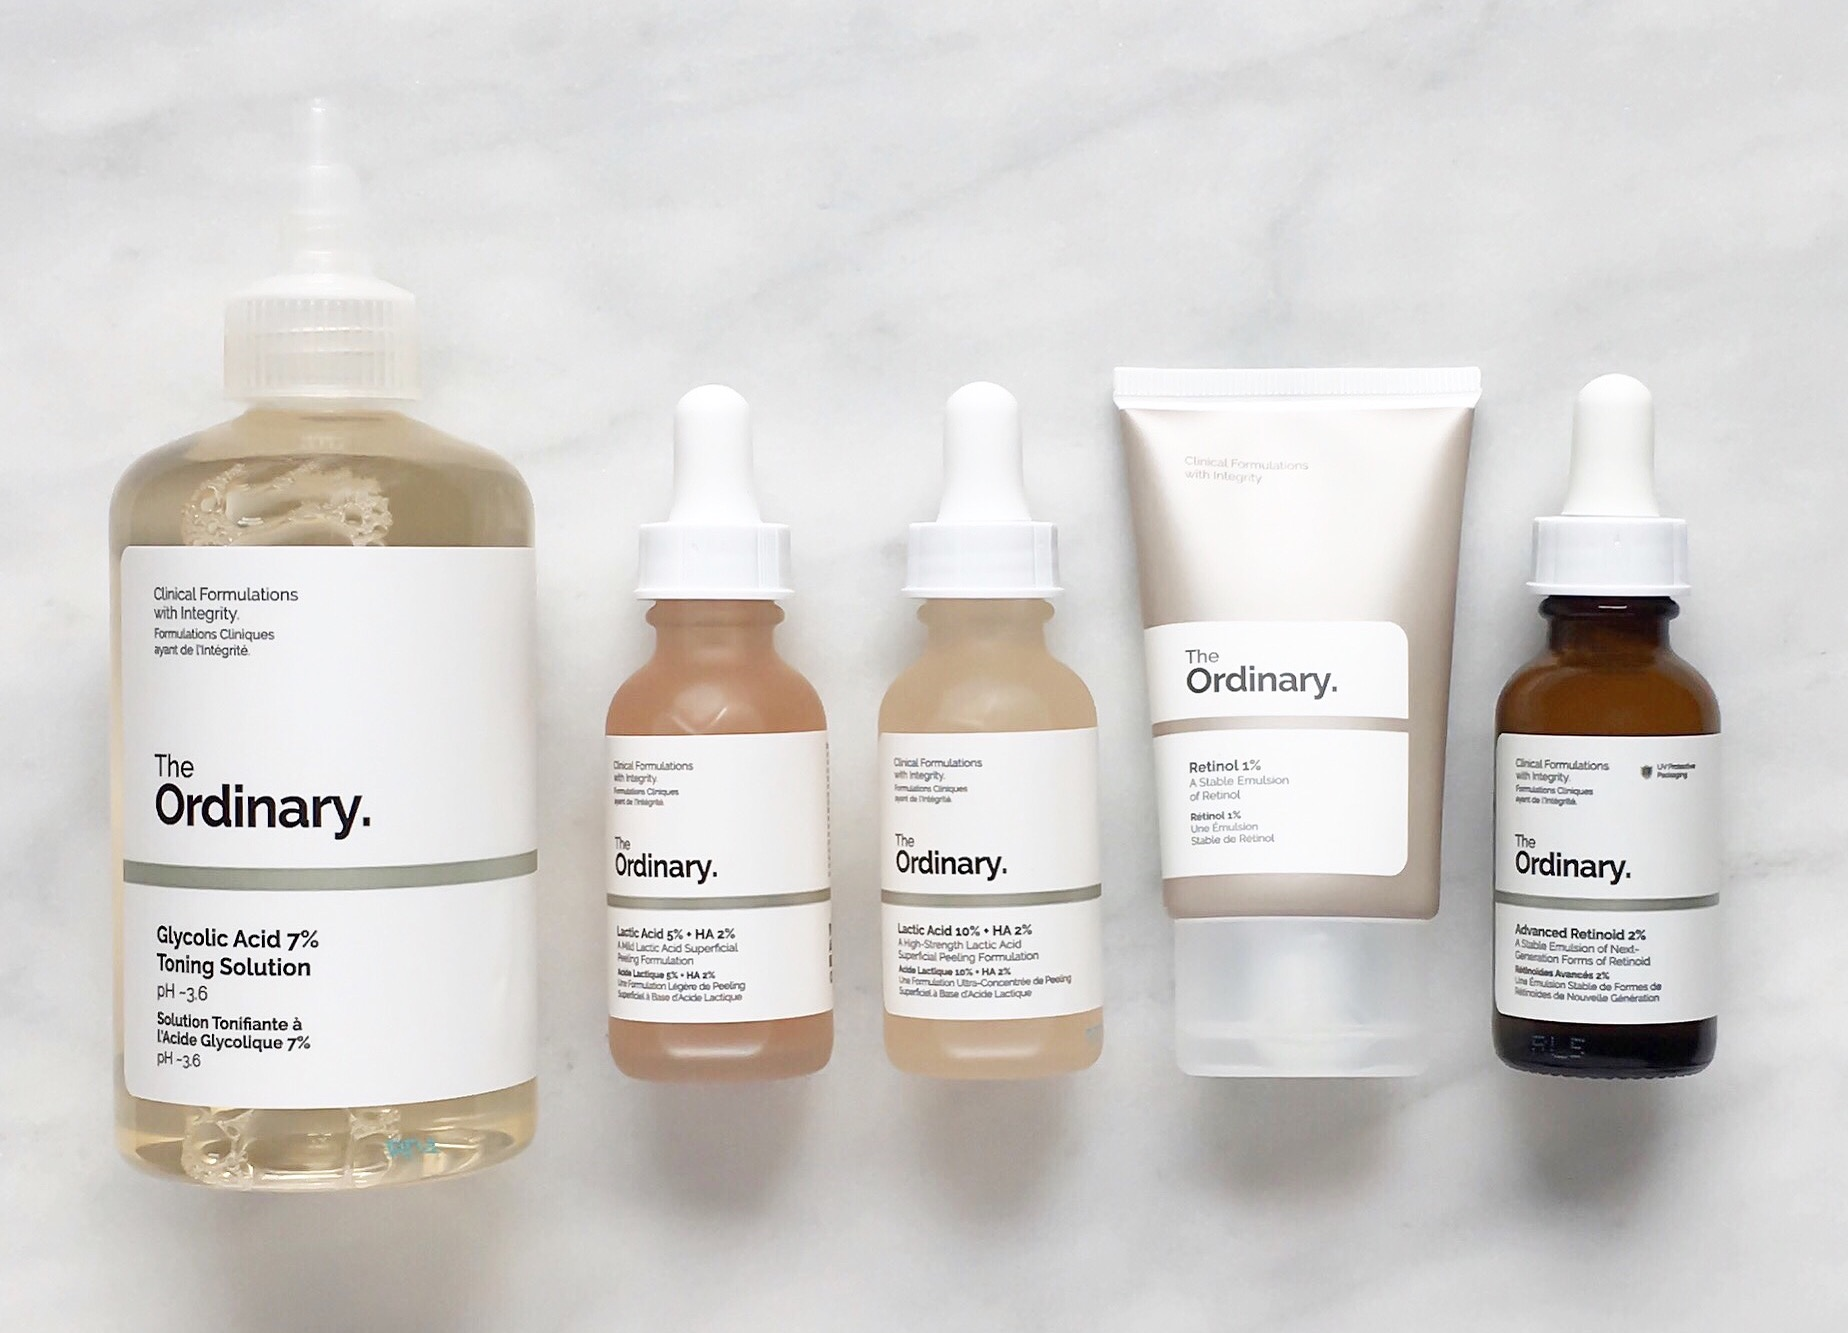 The ordinary regimen